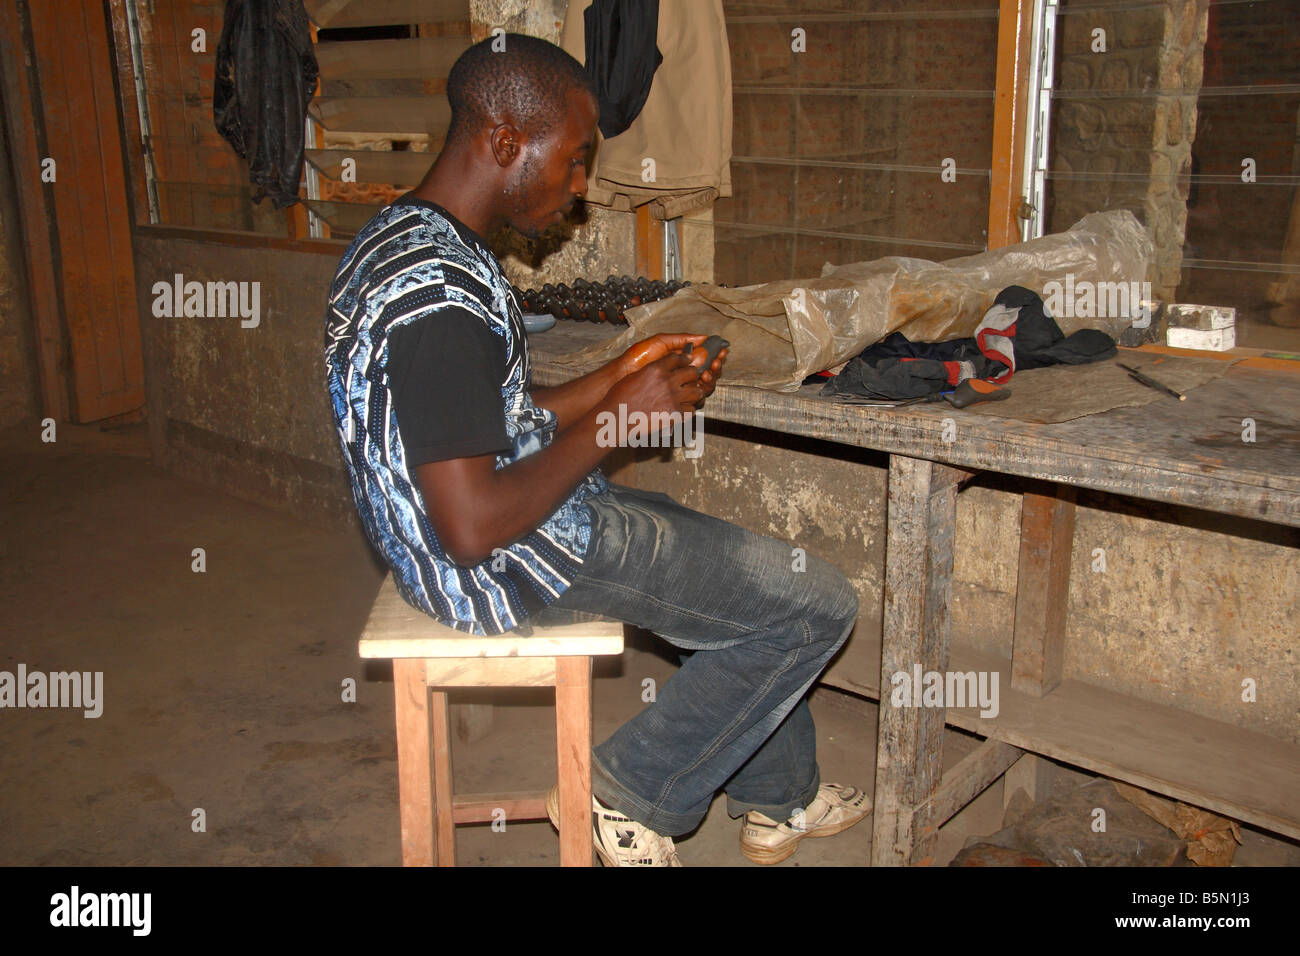 Pottery worker carving ceramic birds at Prespot pottery works Bamessing Northwest Province Cameroon - Stock Image